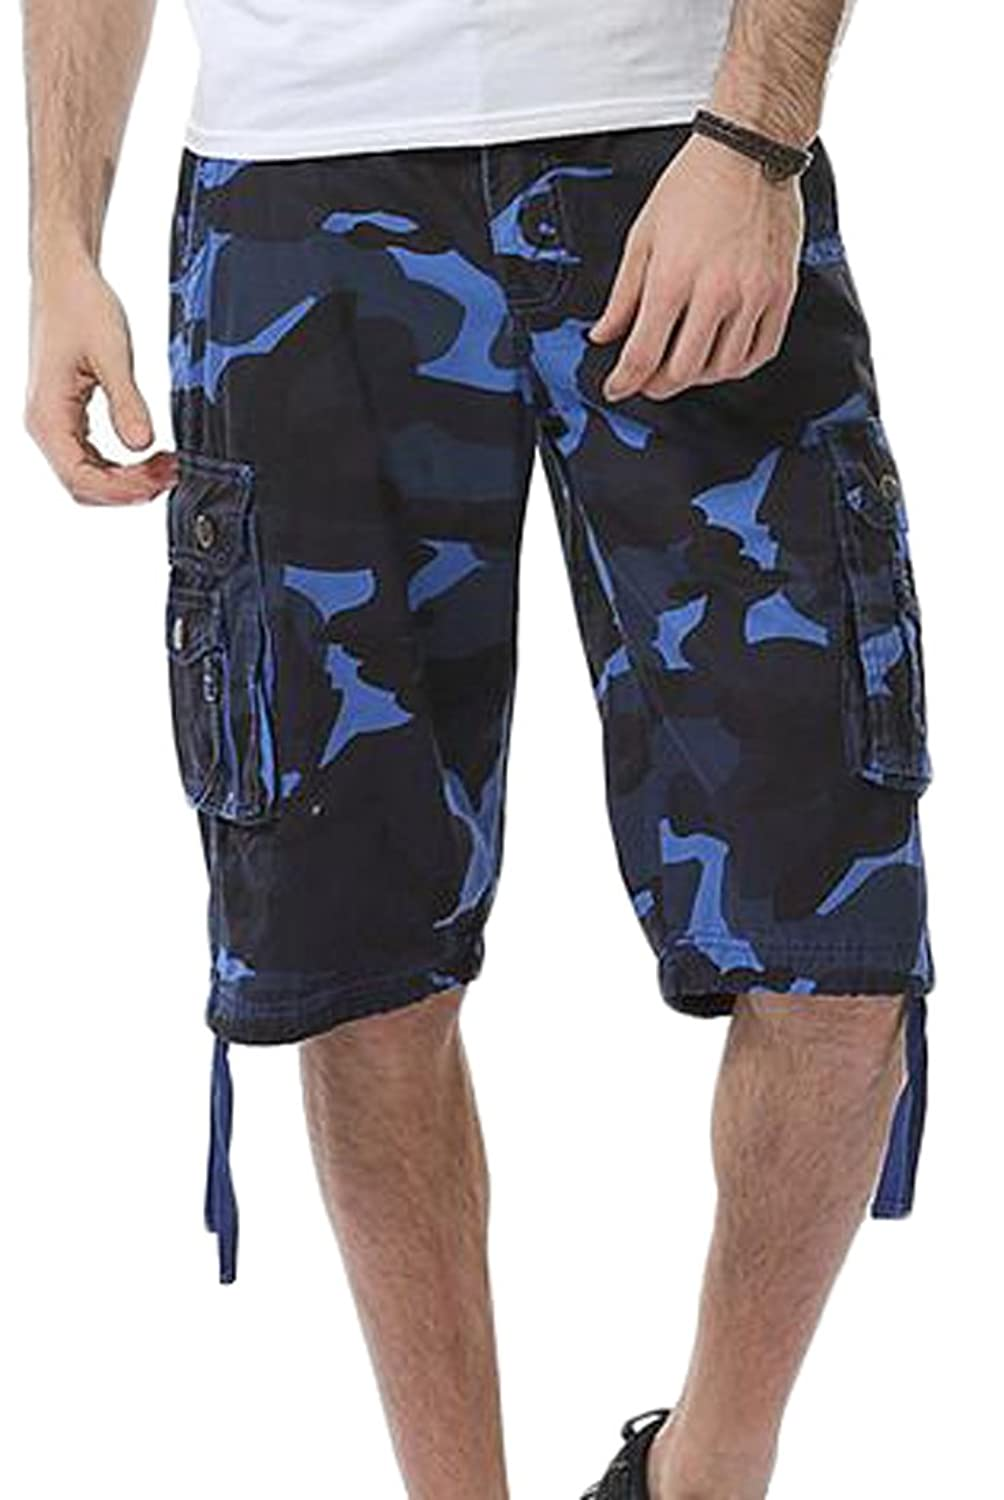 ARRIVE GUIDE Men's Cotton Baggy Camo Multi-pocket Knee Length Cargo Short low-cost